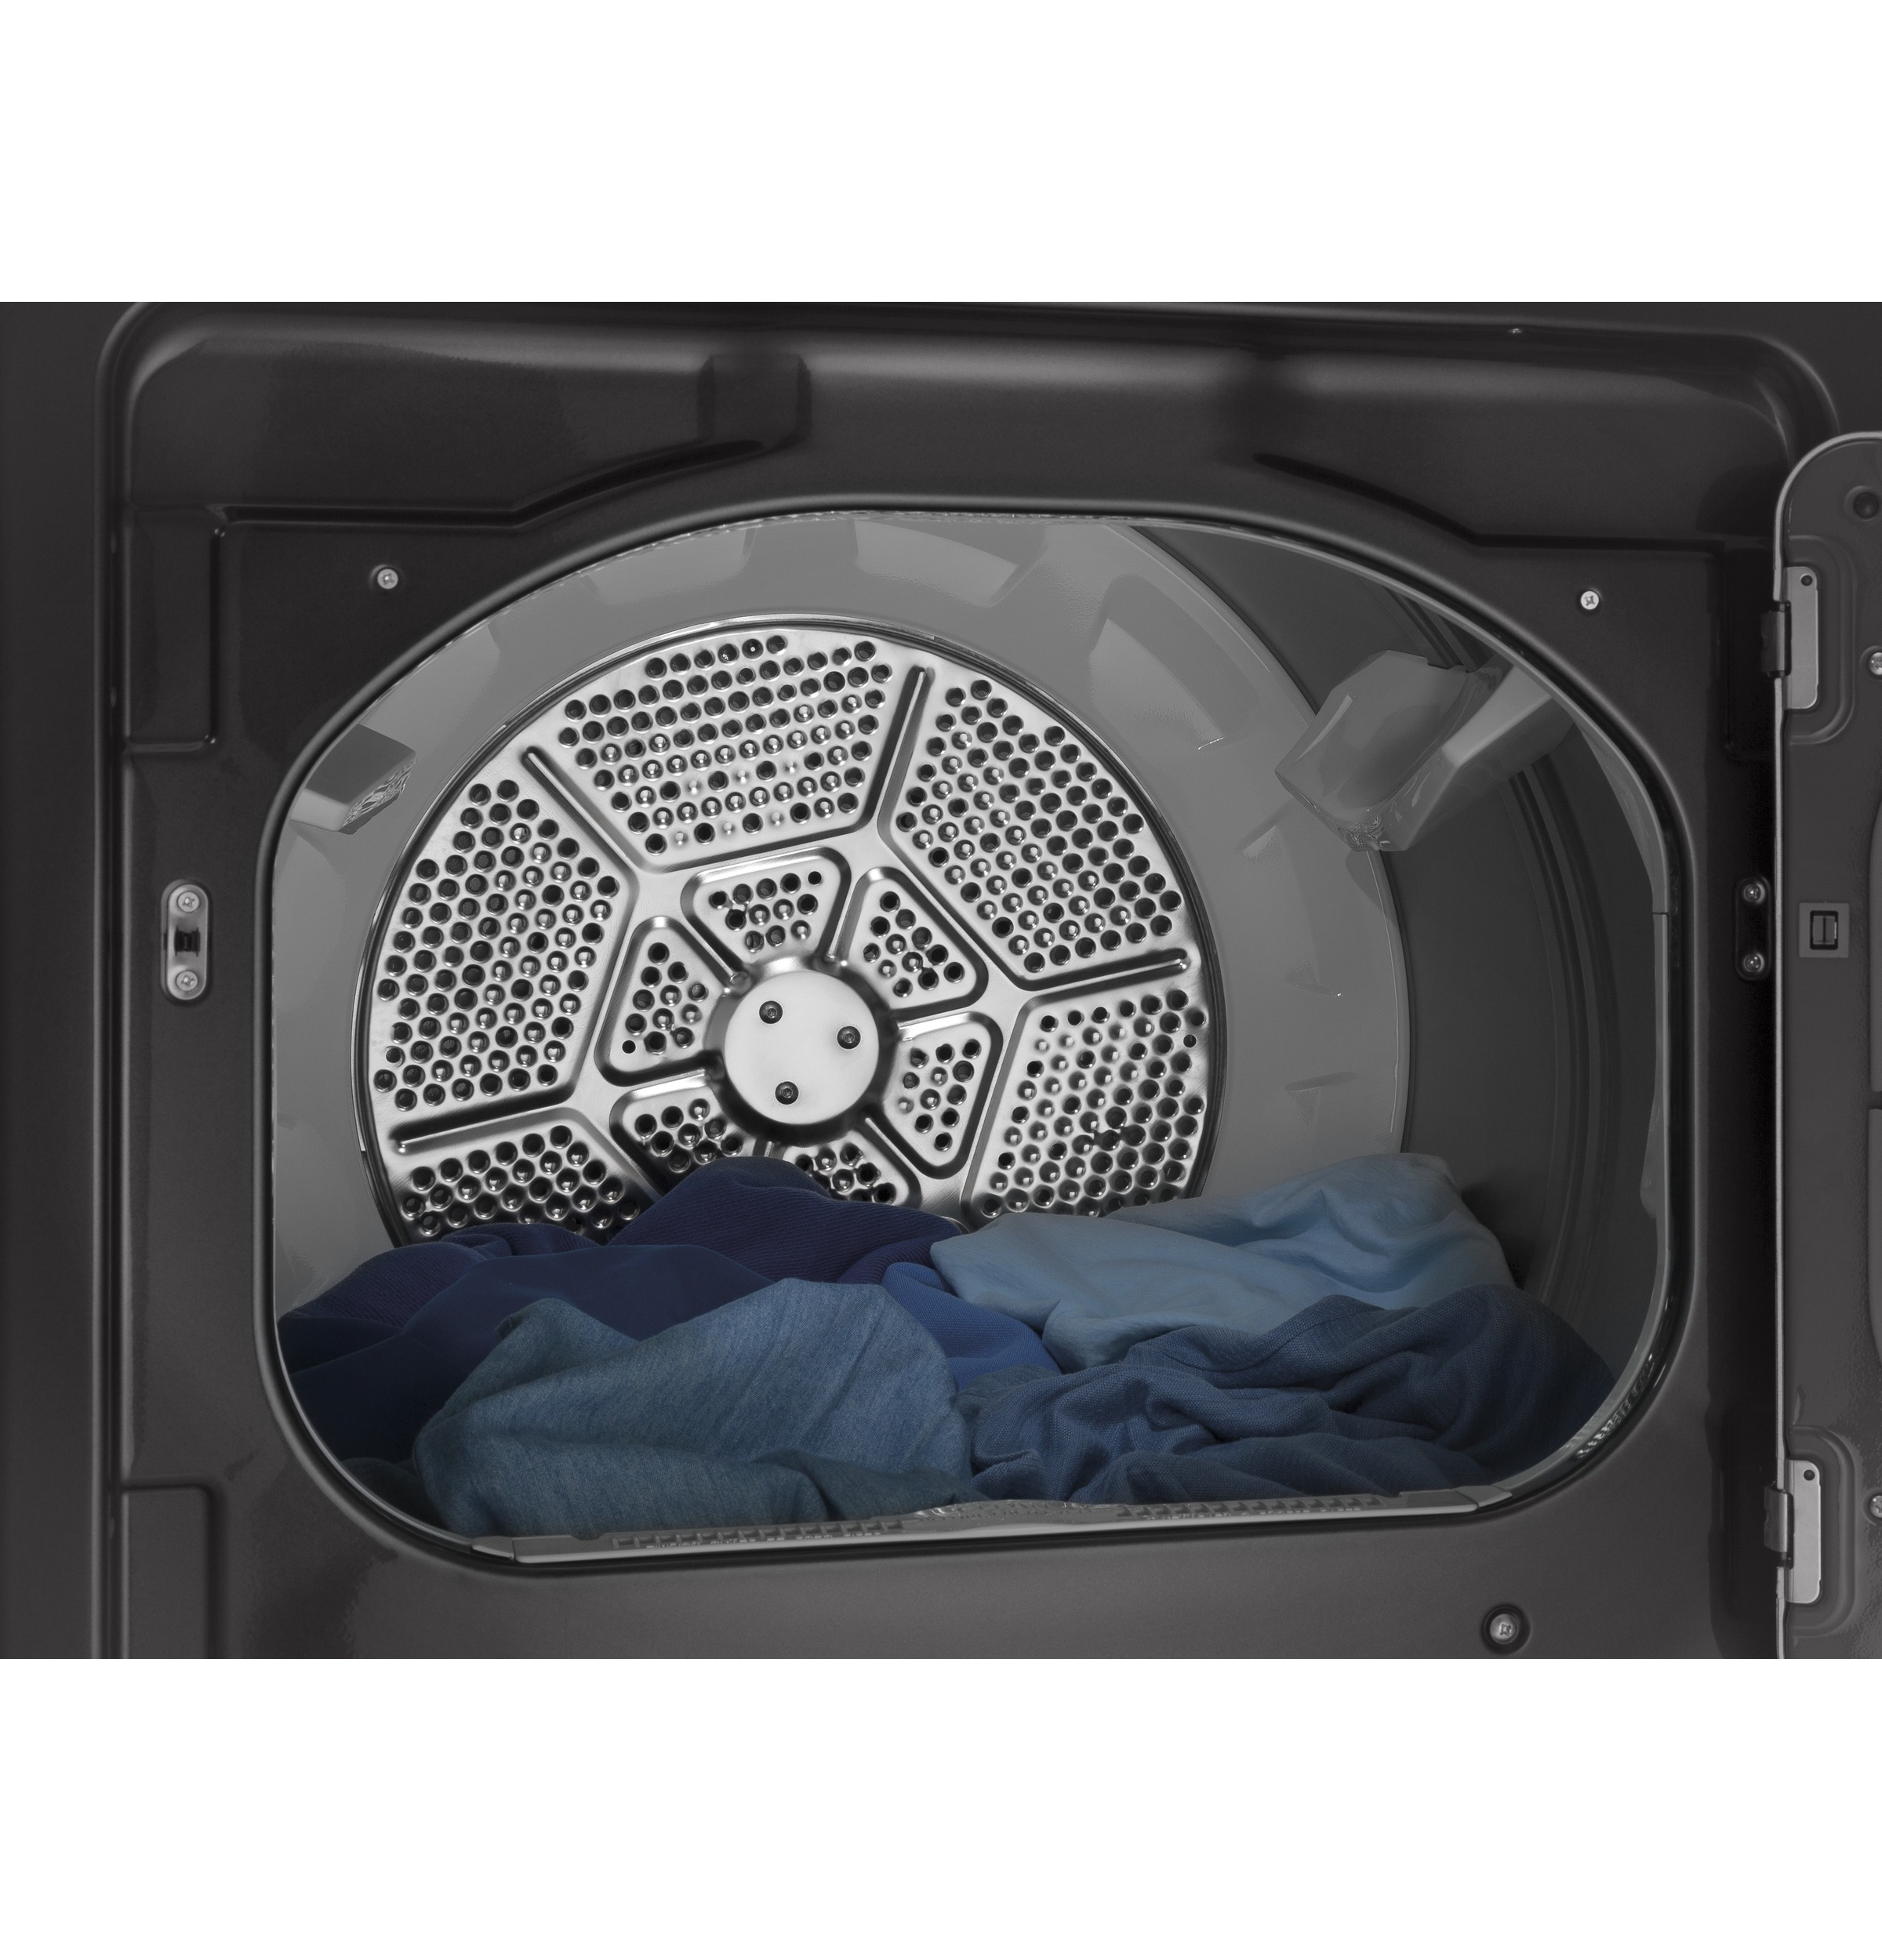 Model: GTD65EBPLDG | GE® 7.4 cu. ft. Capacity aluminized alloy drum Electric Dryer with HE Sensor Dry